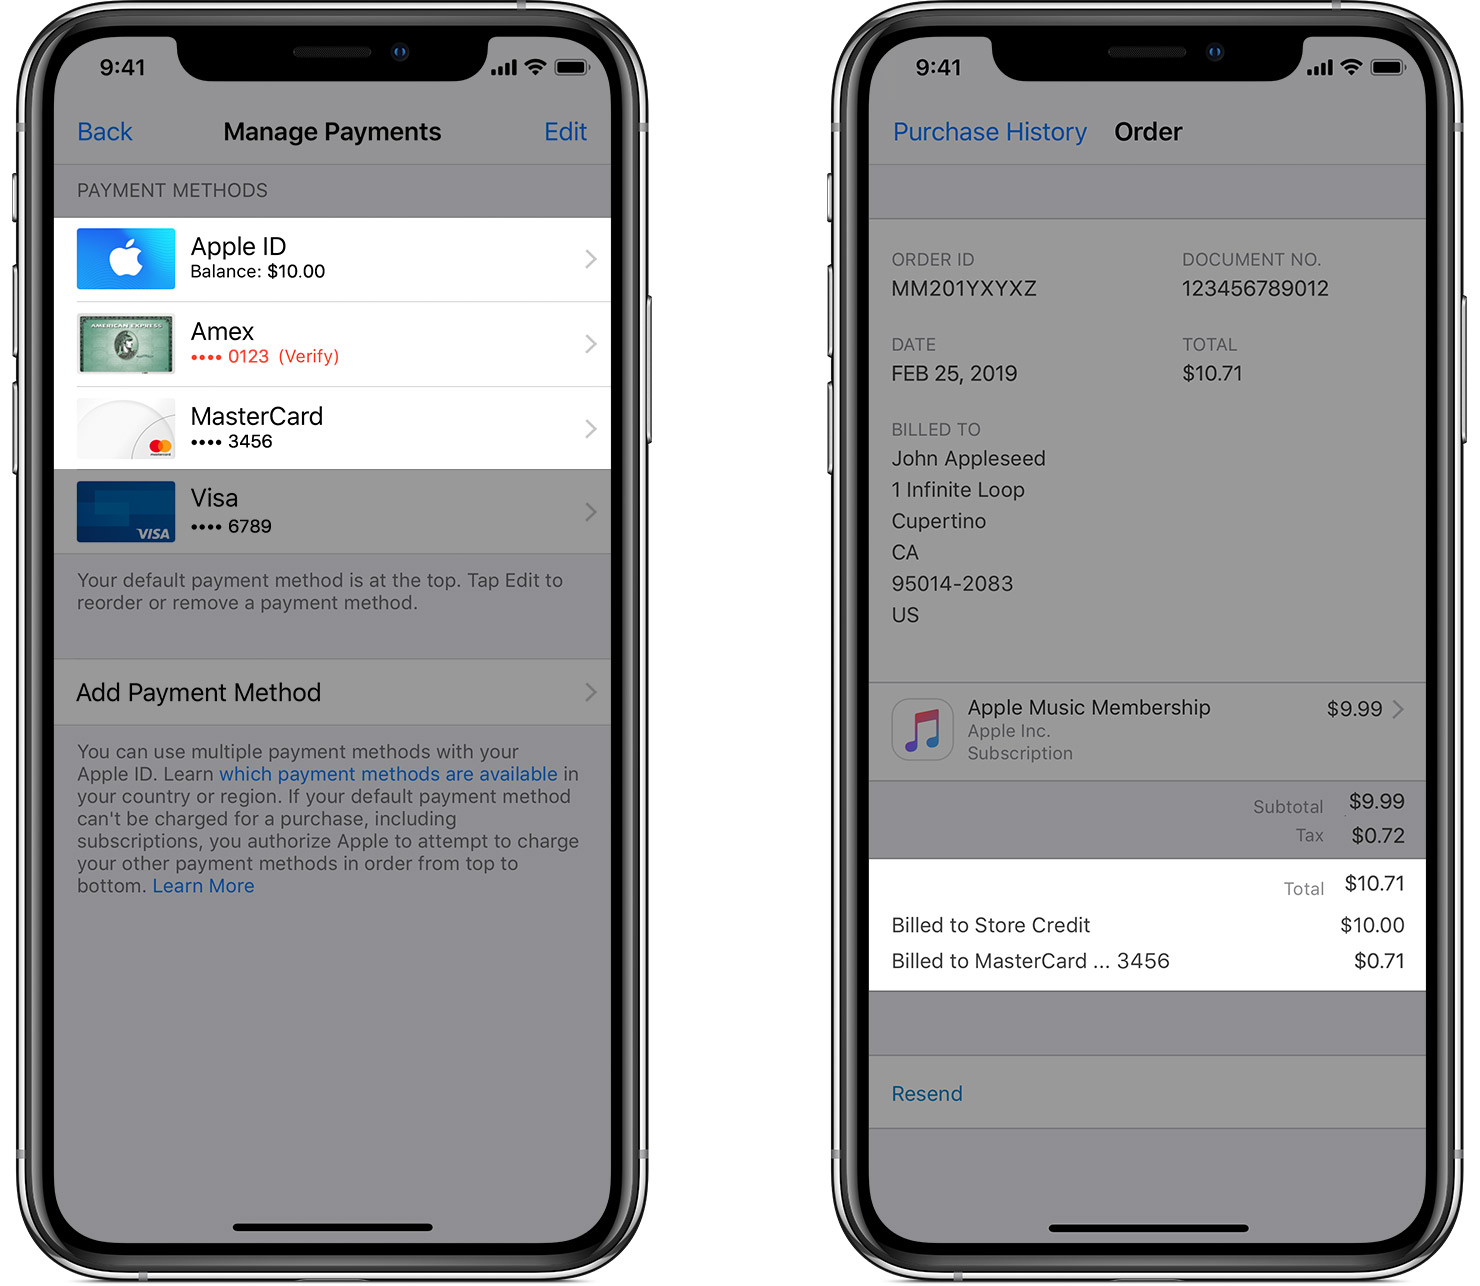 How App Store and iTunes Store purchases are billed - Apple